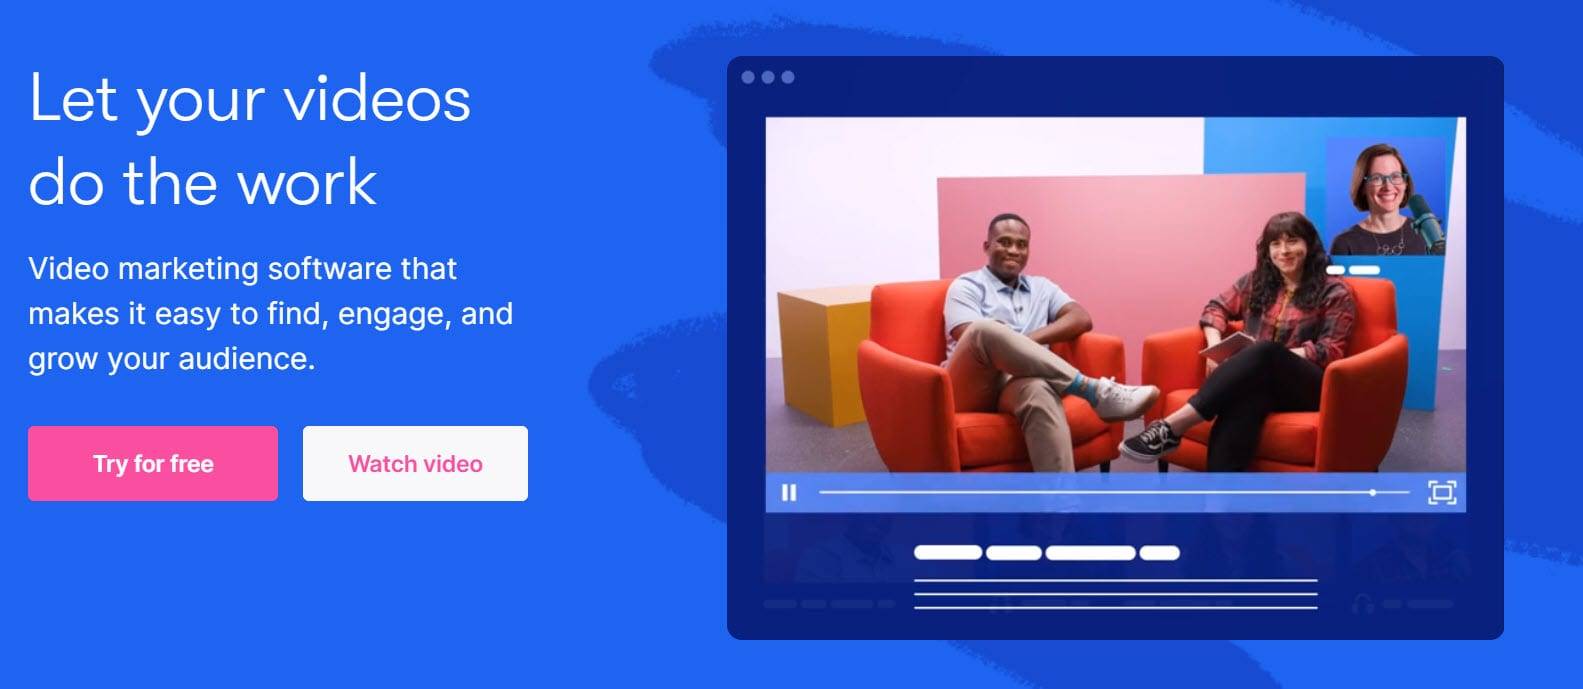 Wistia video in the header website section